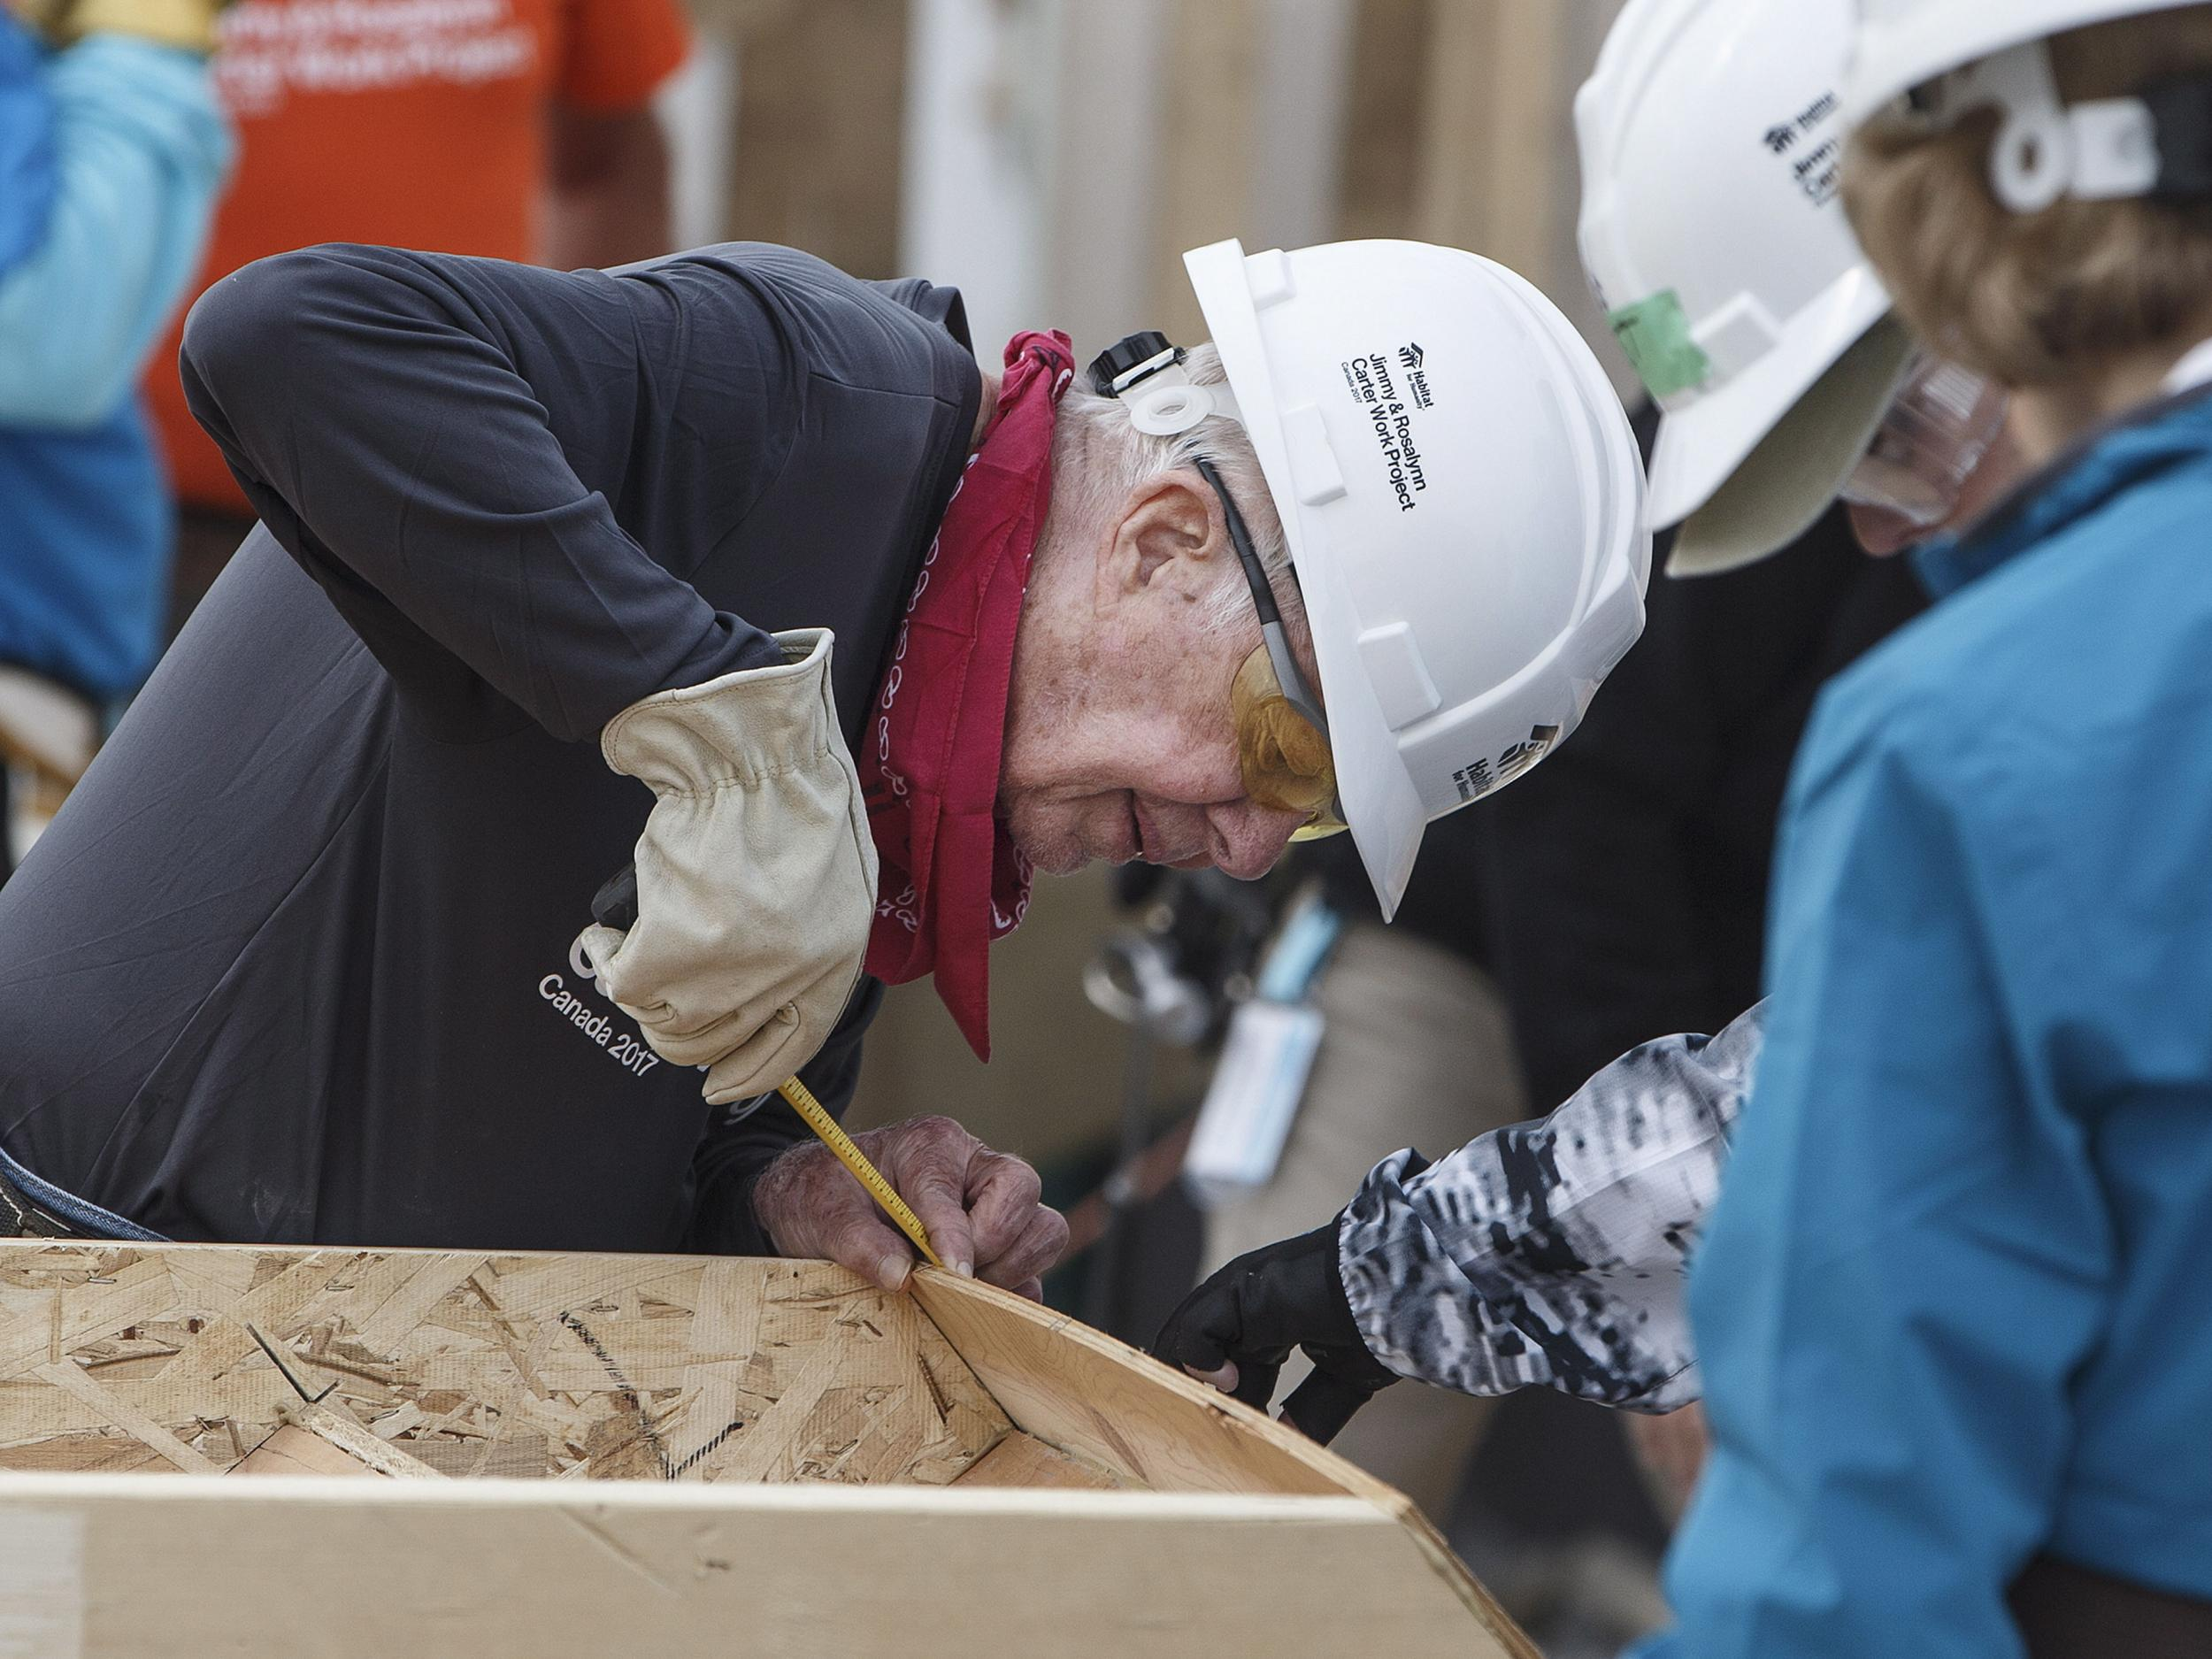 Jimmy and Rosalynn Carter have been volunteering with Habitat for Humanity for more than 40 years, helping build homes for needy families in the U.S. and abroad.